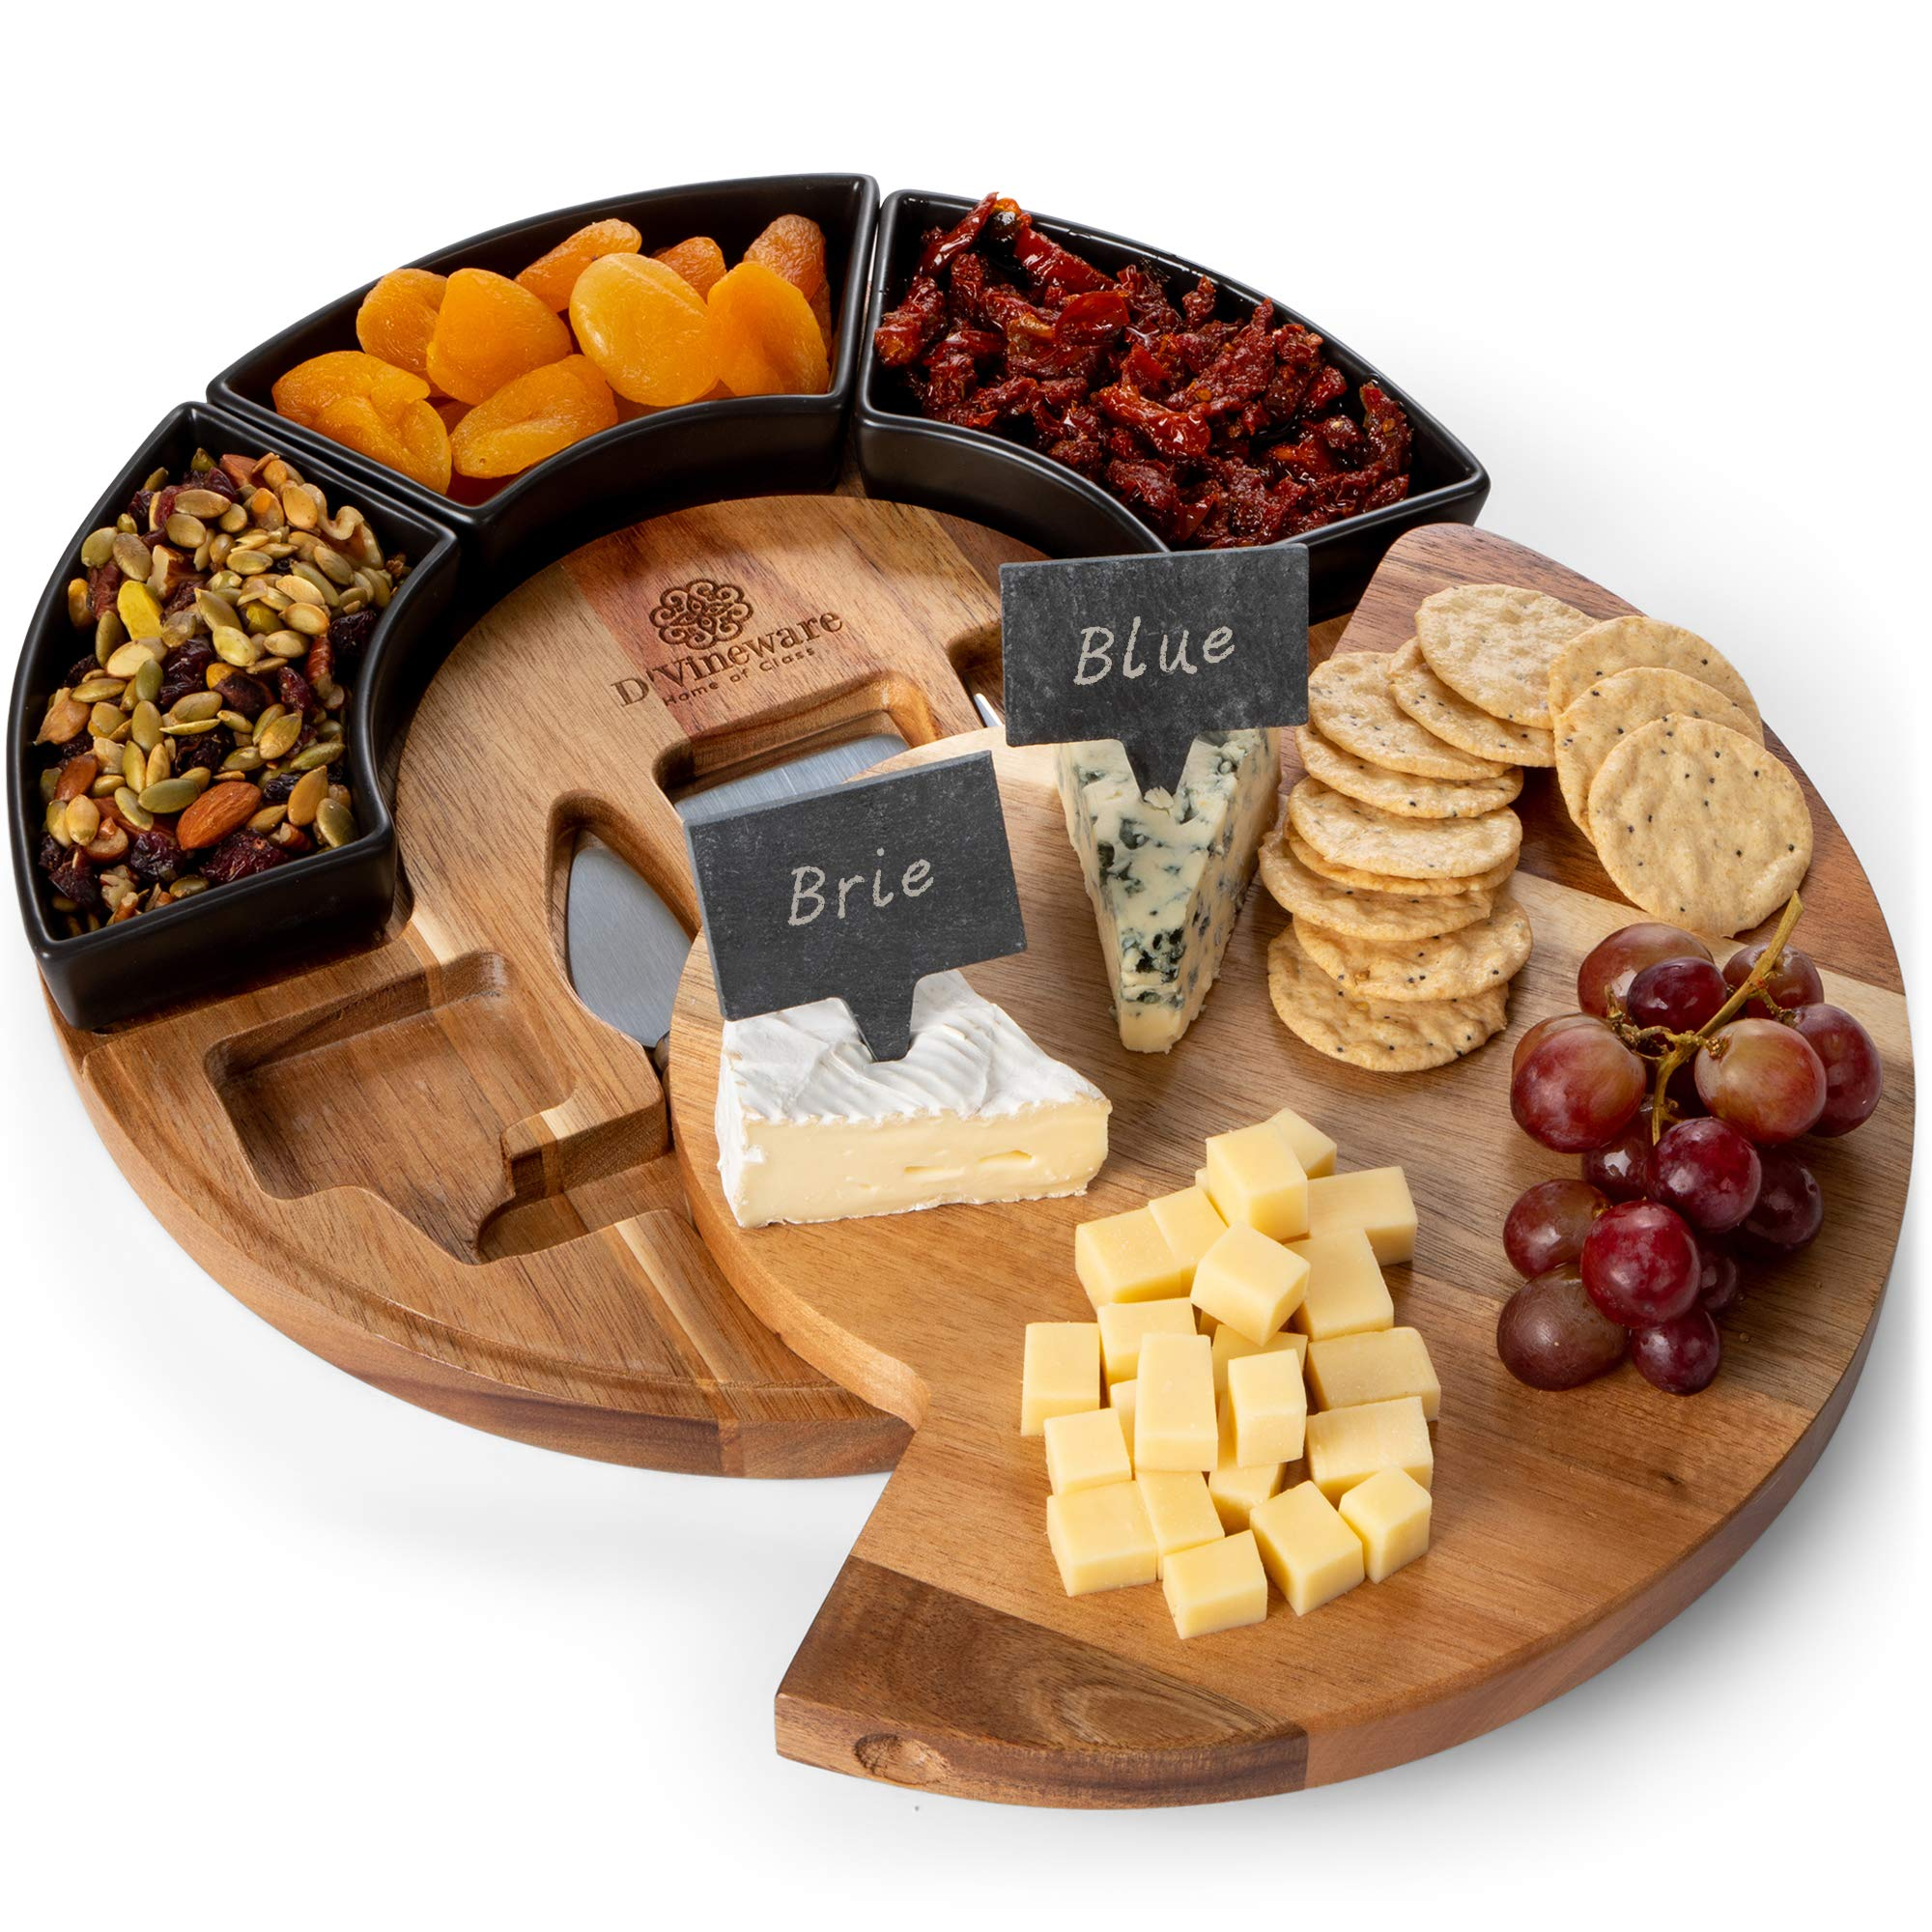 Round Cheese Board and Knives Set, Acacia Wood, Bowl & Wooden Charcuterie Boards for Cutting Meat, Cheeses, and Wine - Appetizer Serving Tray with Ceramic Bowls, Knife Spreaders, Slates, Chalk by DVineware (Image #1)